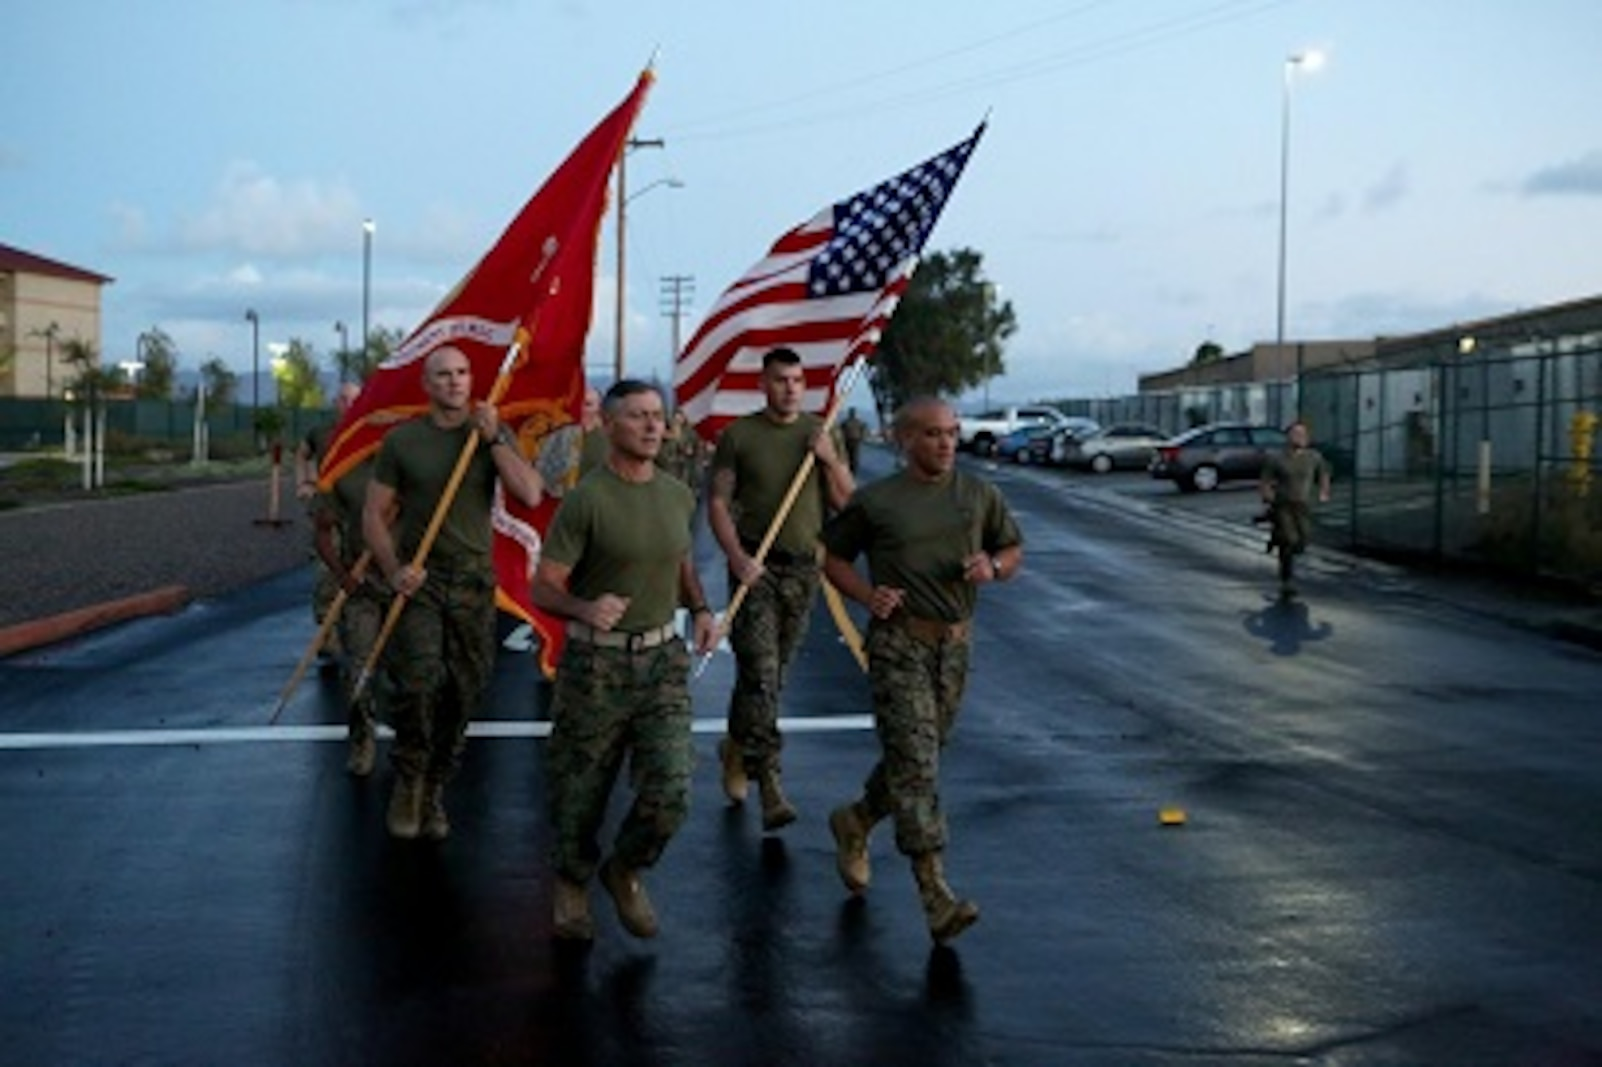 Hey mainside!   If you heard what sounded like stampede of motivation this morning, worry not. It was just headquarters regiment celebrating the Marine Corps Birthday with a little moto run.